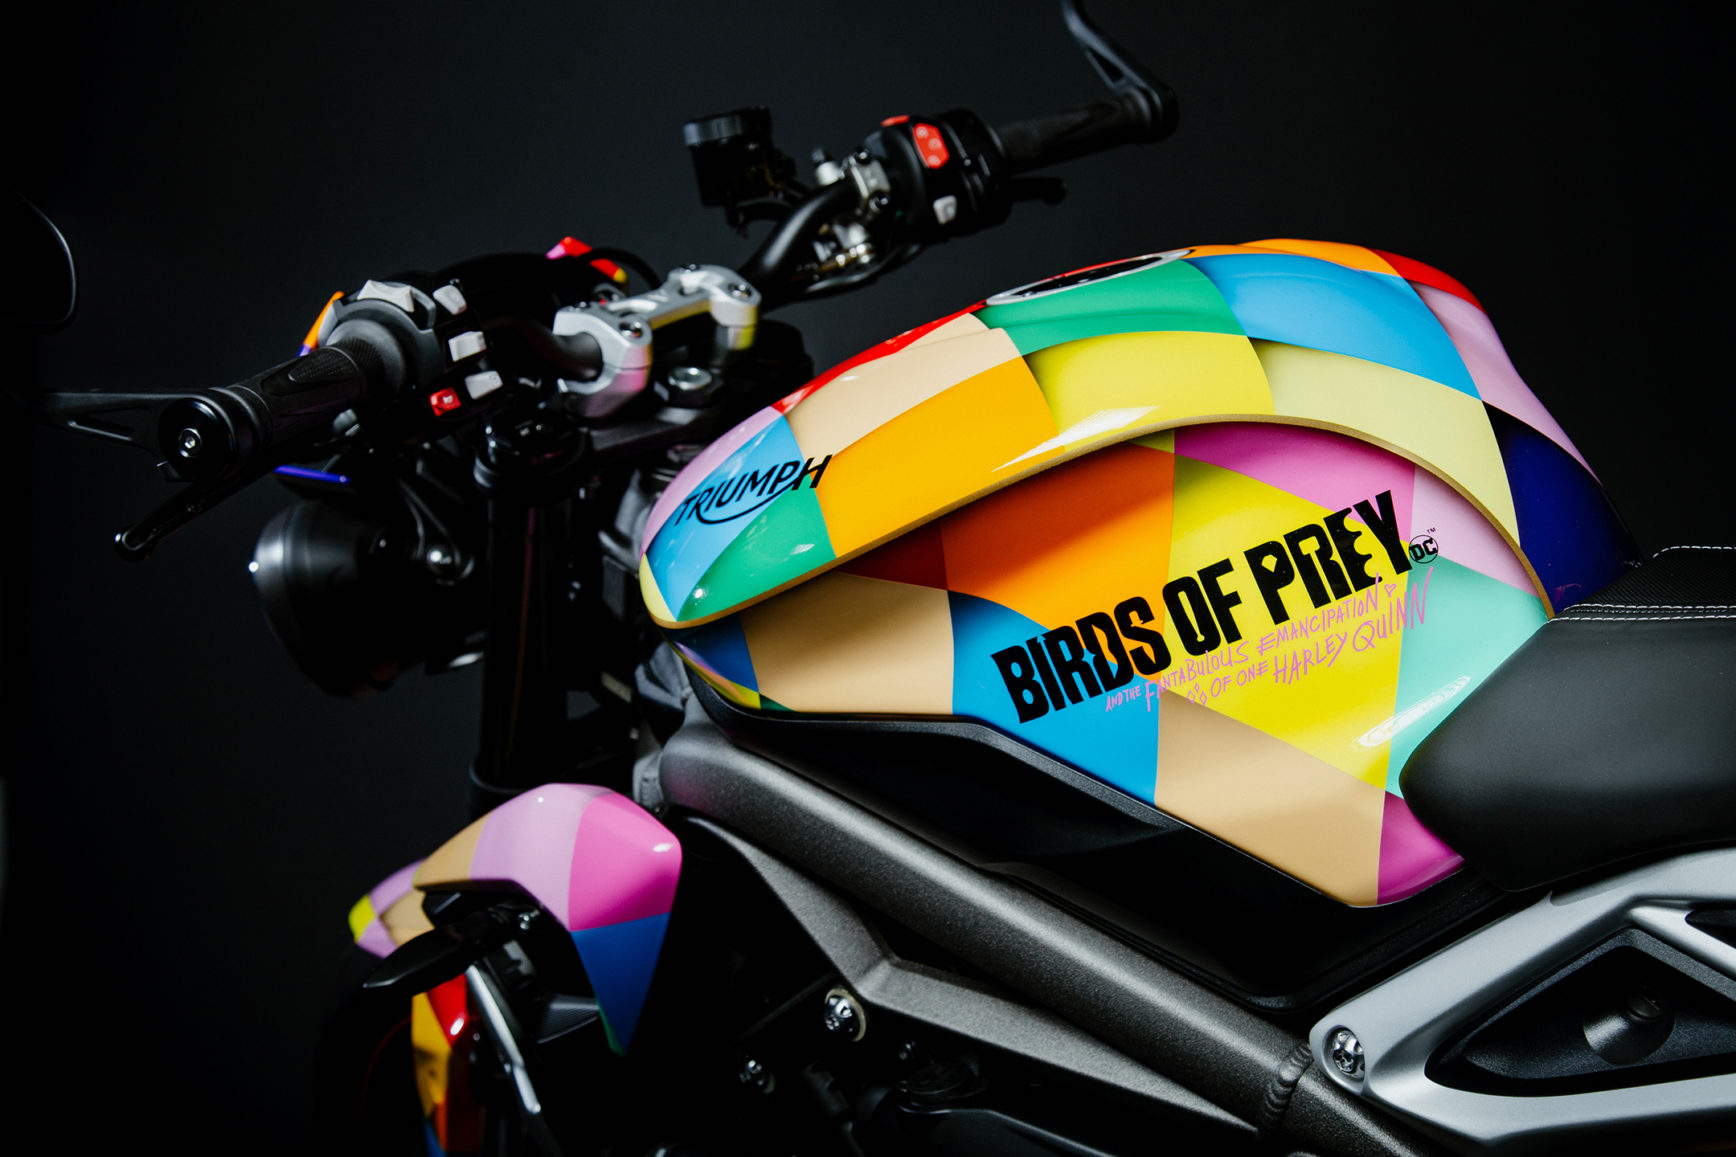 Birds of Prey Triumph Street Triple RS - 2020 - design fuel tank - logo Birds of Prey -and the Fantabulous Emancipation of One Harley Quinn- - logo Triumph